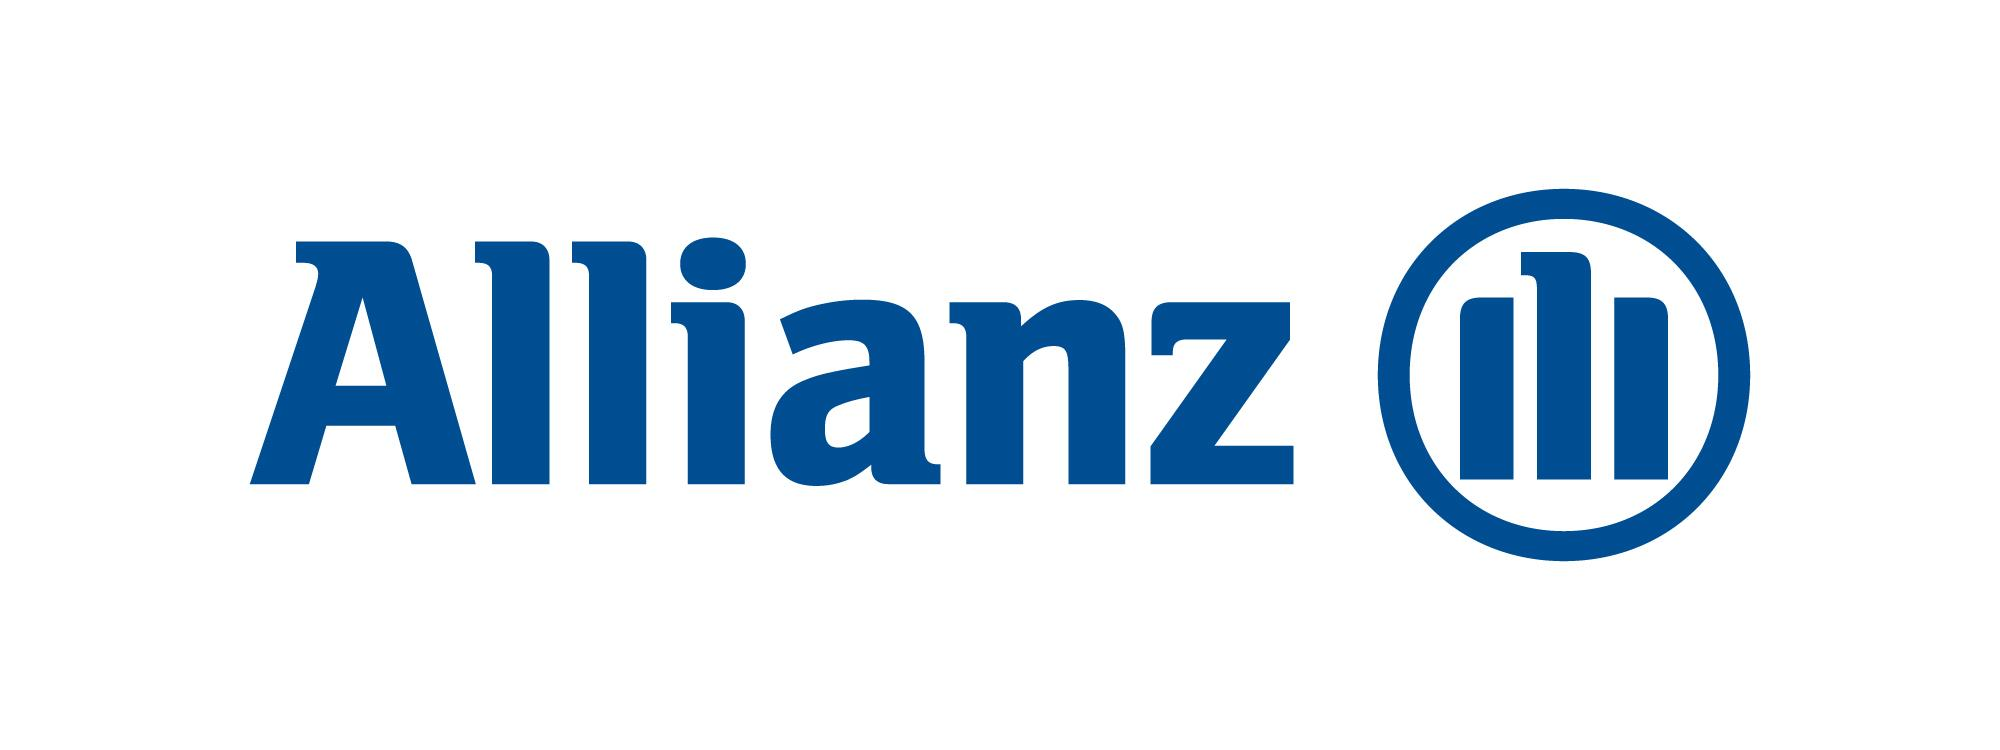 Allianz Logo Vector Allianz Logo Allianz Logo Png